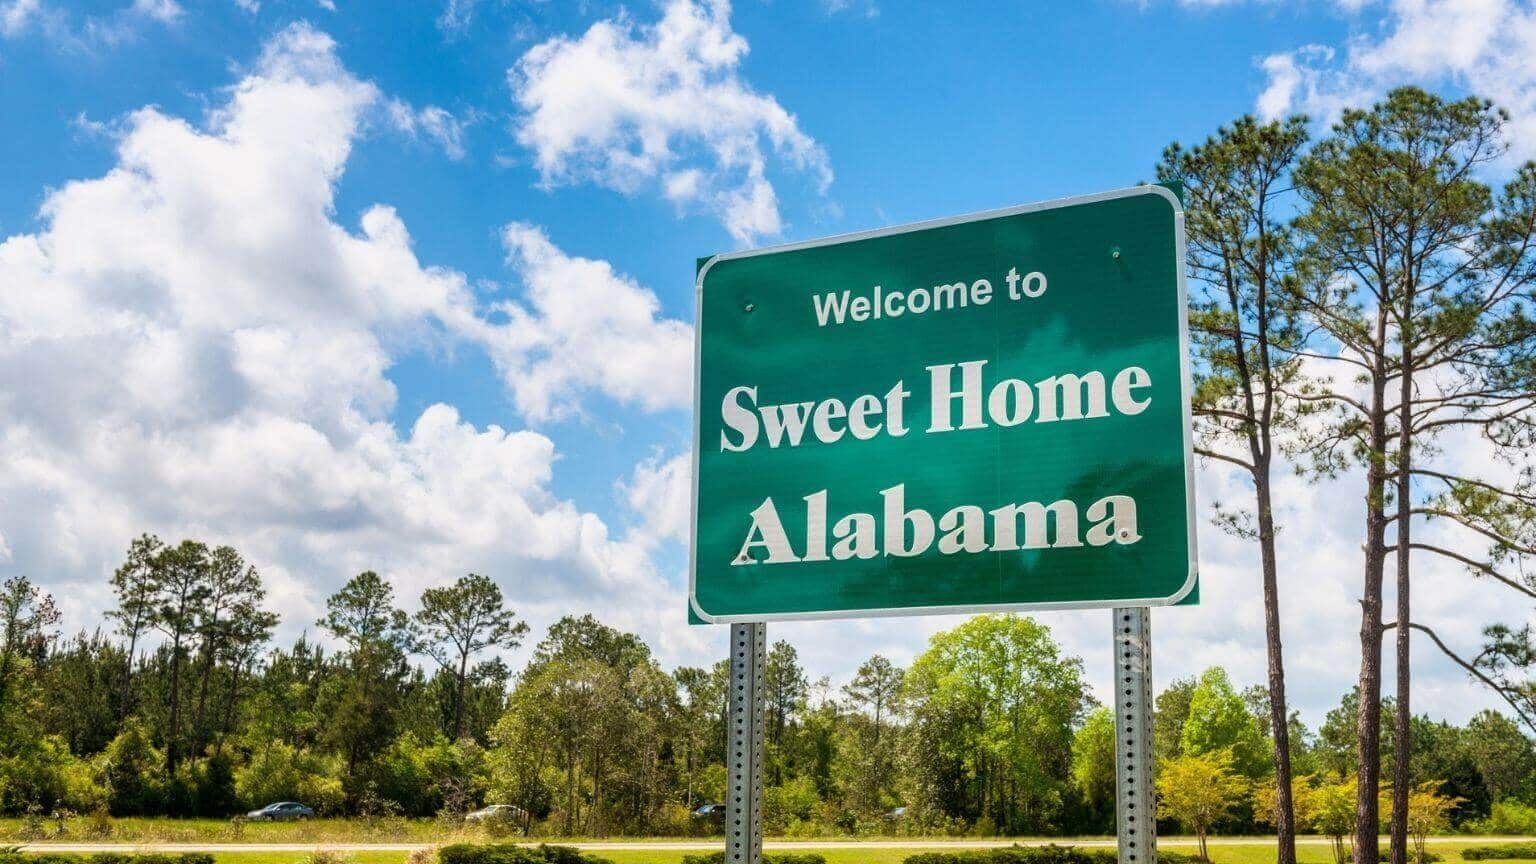 Welcome to Sweet Home Alabama Road Sign in Alabama